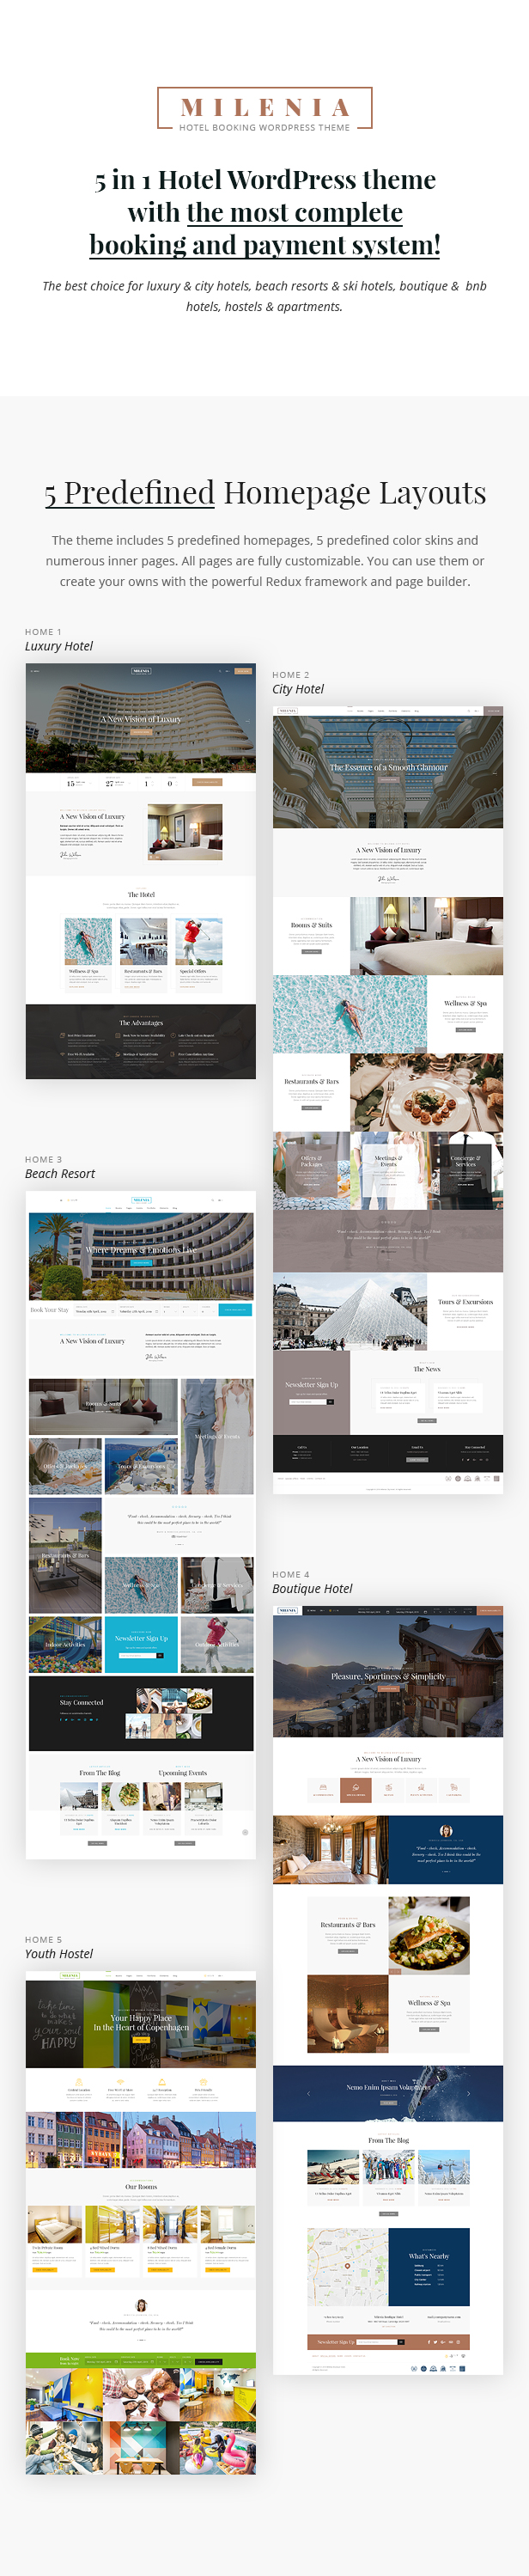 Milenia - Hotel & Booking WordPress Theme - 1